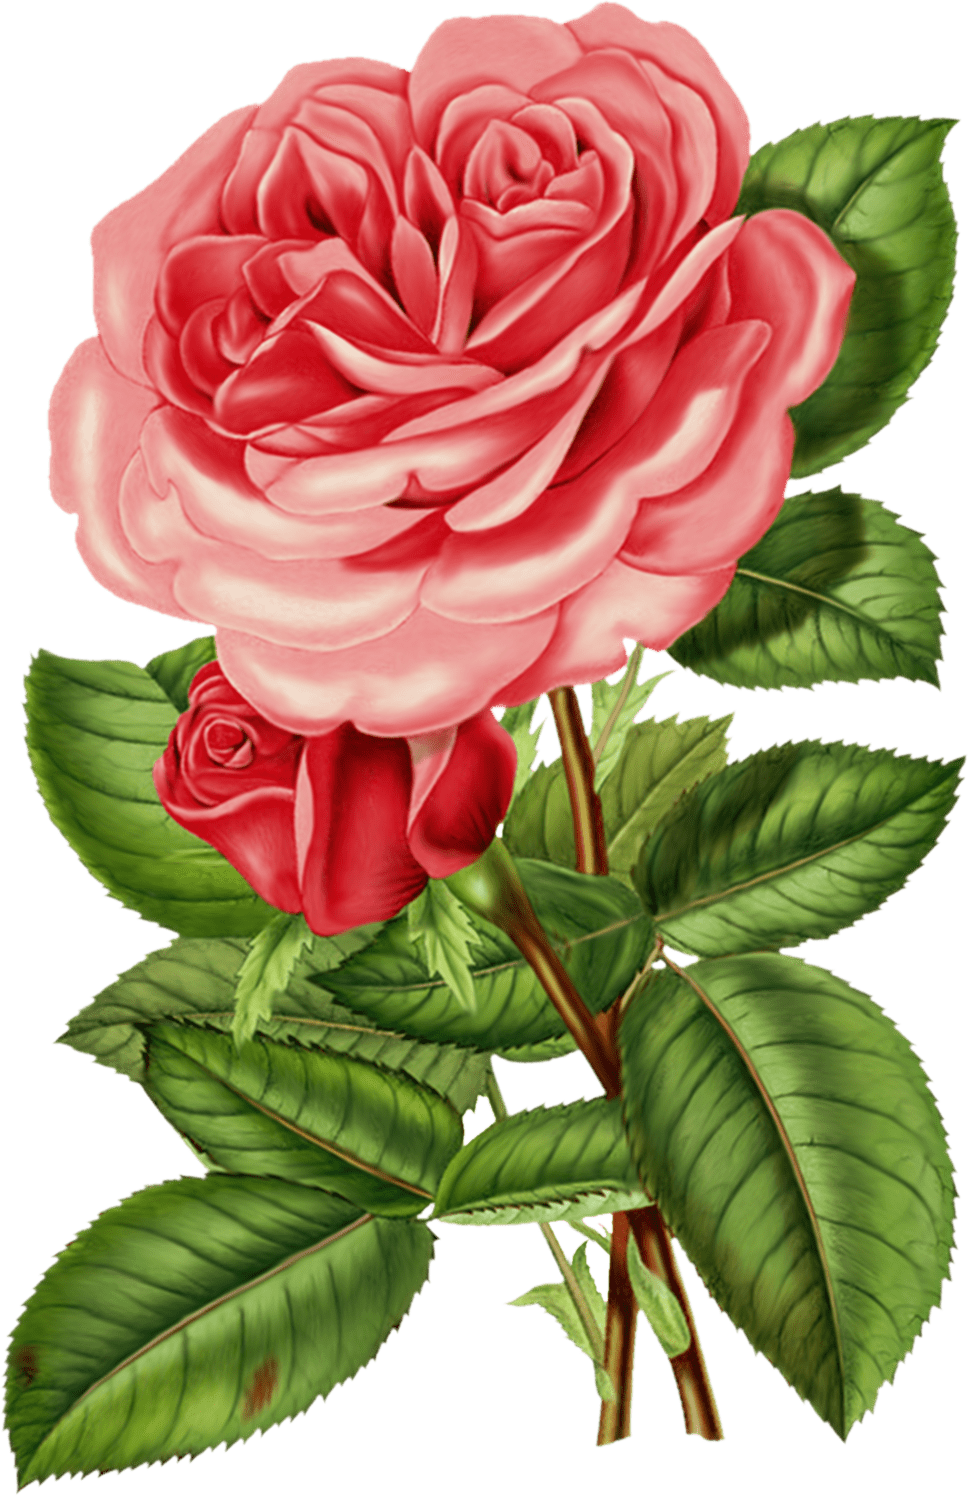 Rose clipart pink rose. Victorian